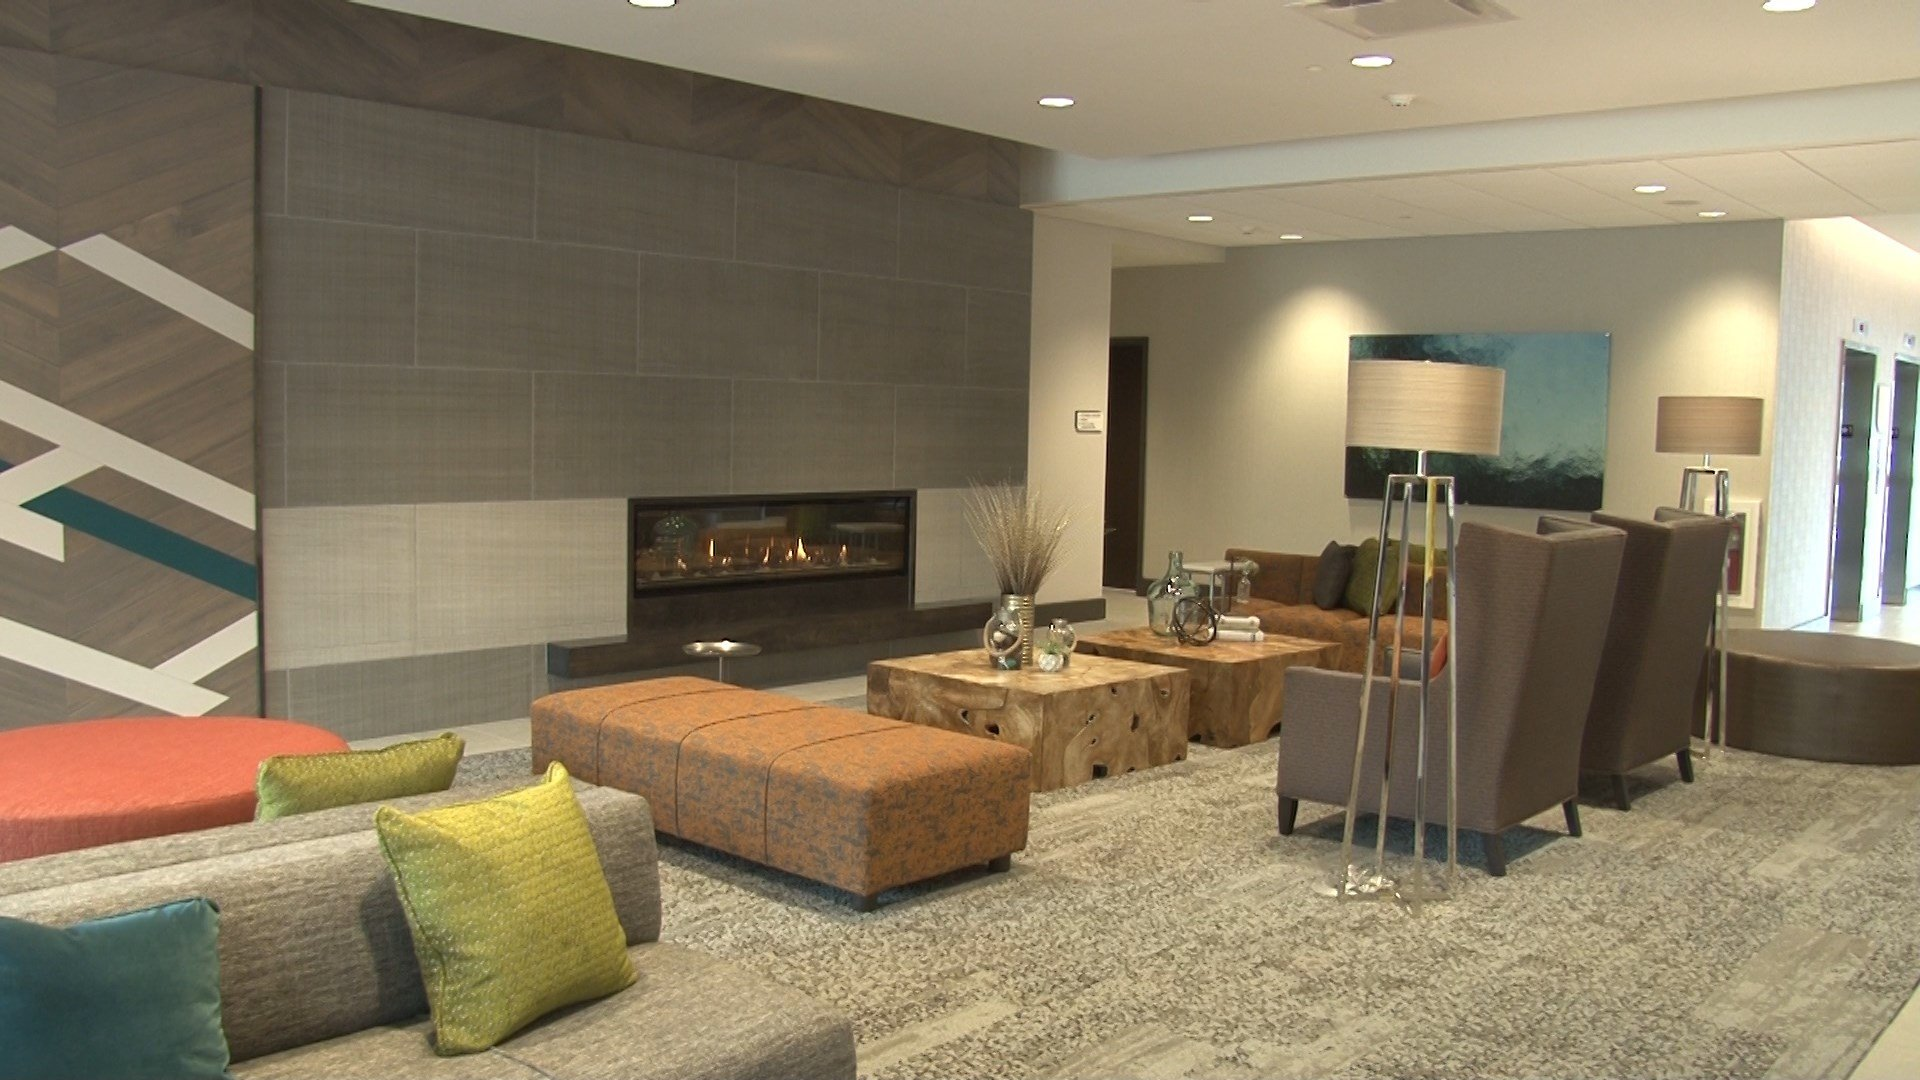 WENY News - Hilton-Garden Inn Officially Opens in Downtown Corning